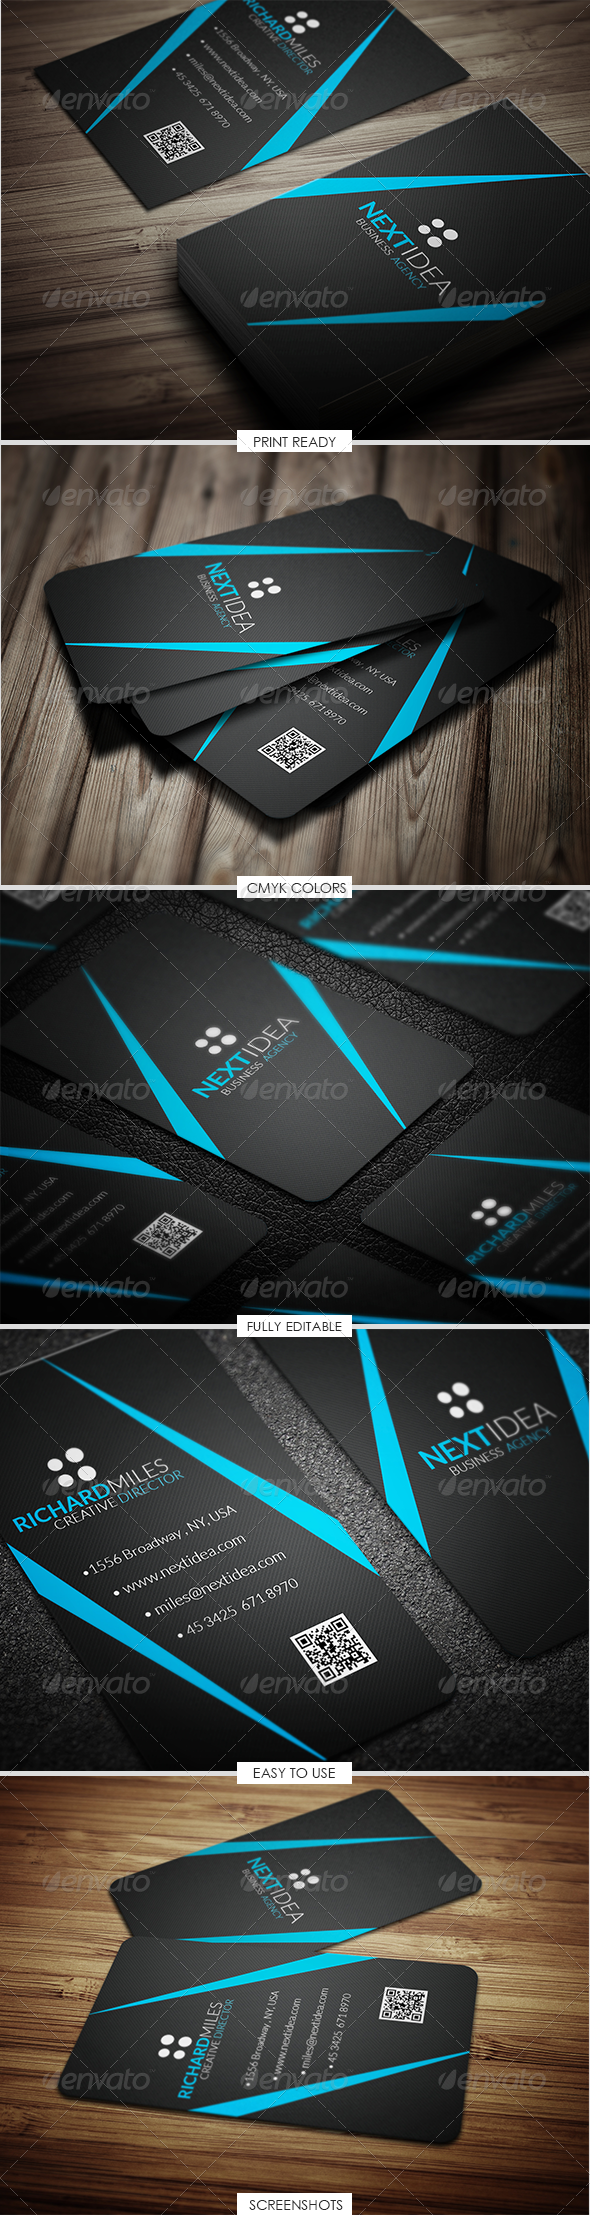 GraphicRiver Corporate Business Card 4913290